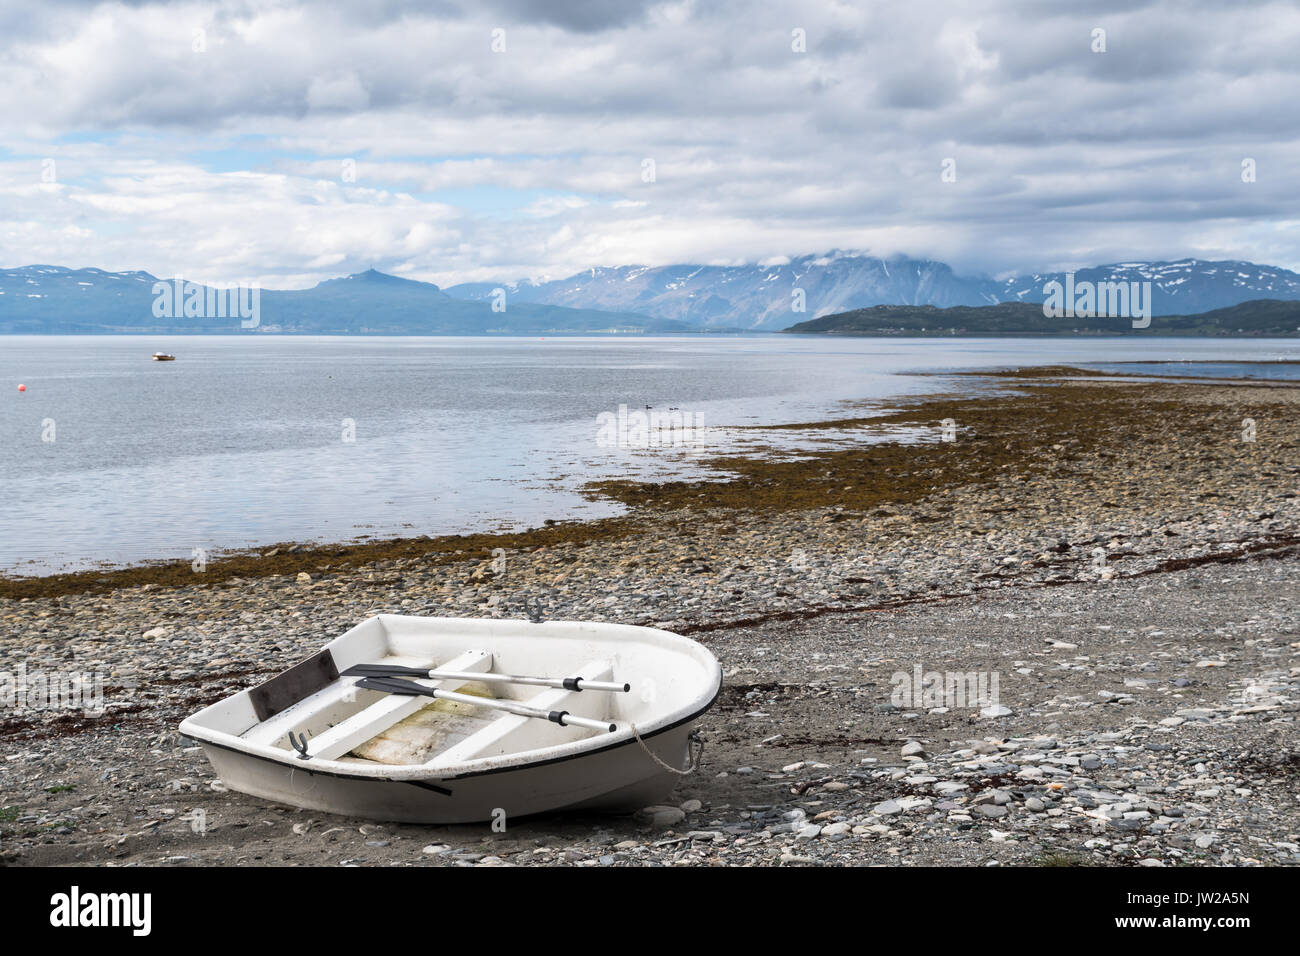 Small white boat with paddles on land - Stock Image